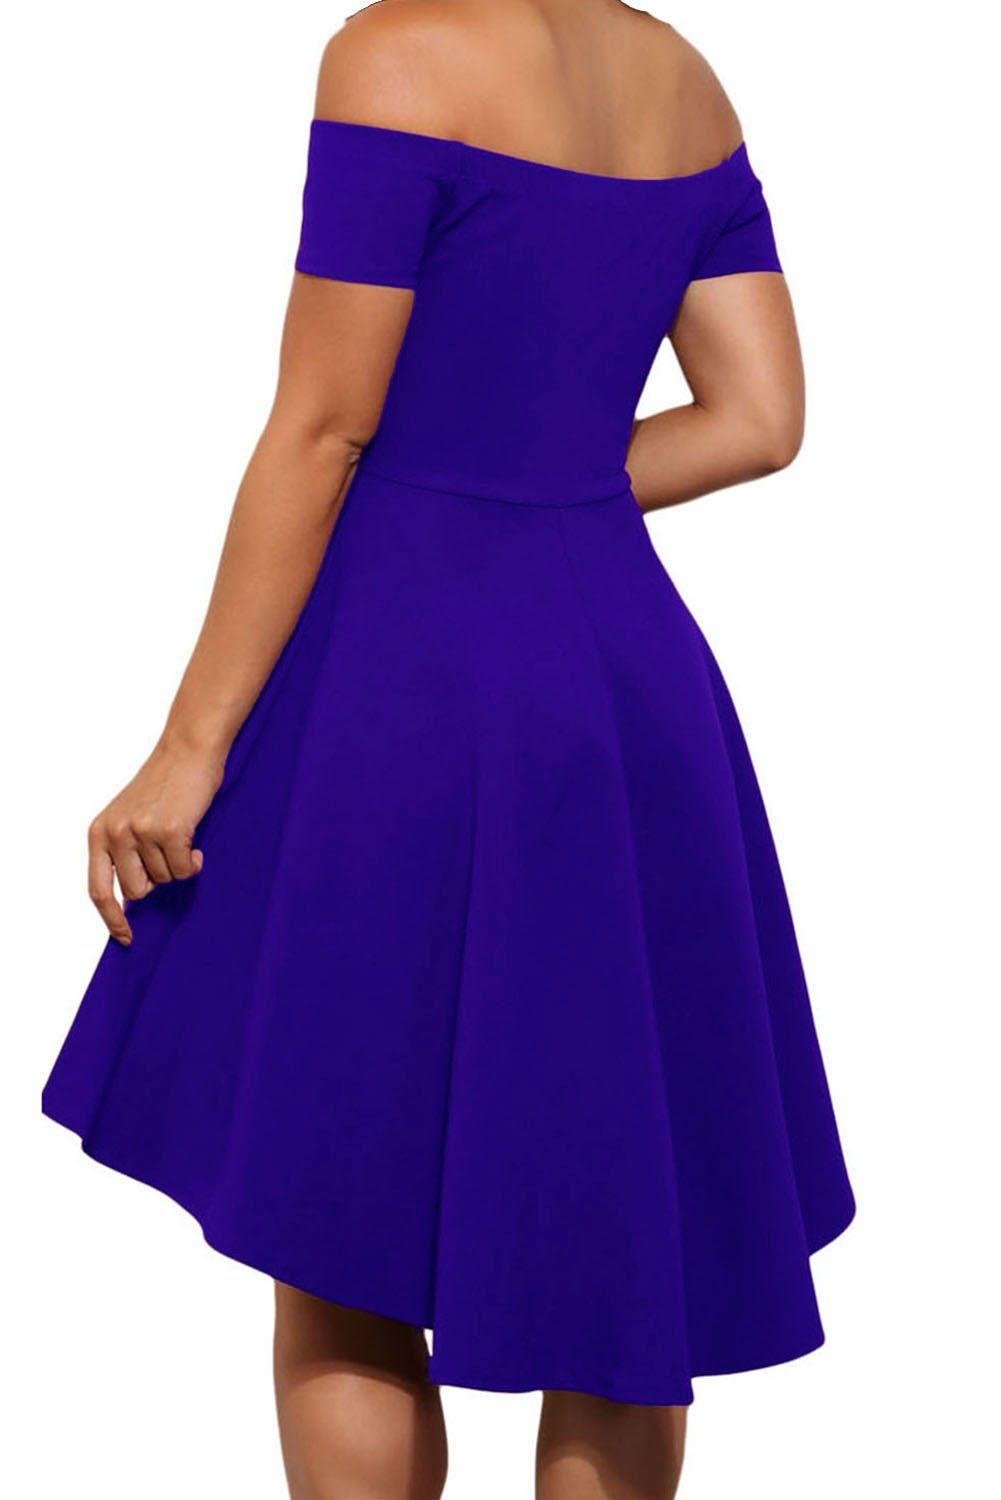 Royal blue dress for wedding guest  LOSRLY Womens Casual Retro Open Shoulder Flare Wedding Guest Dress